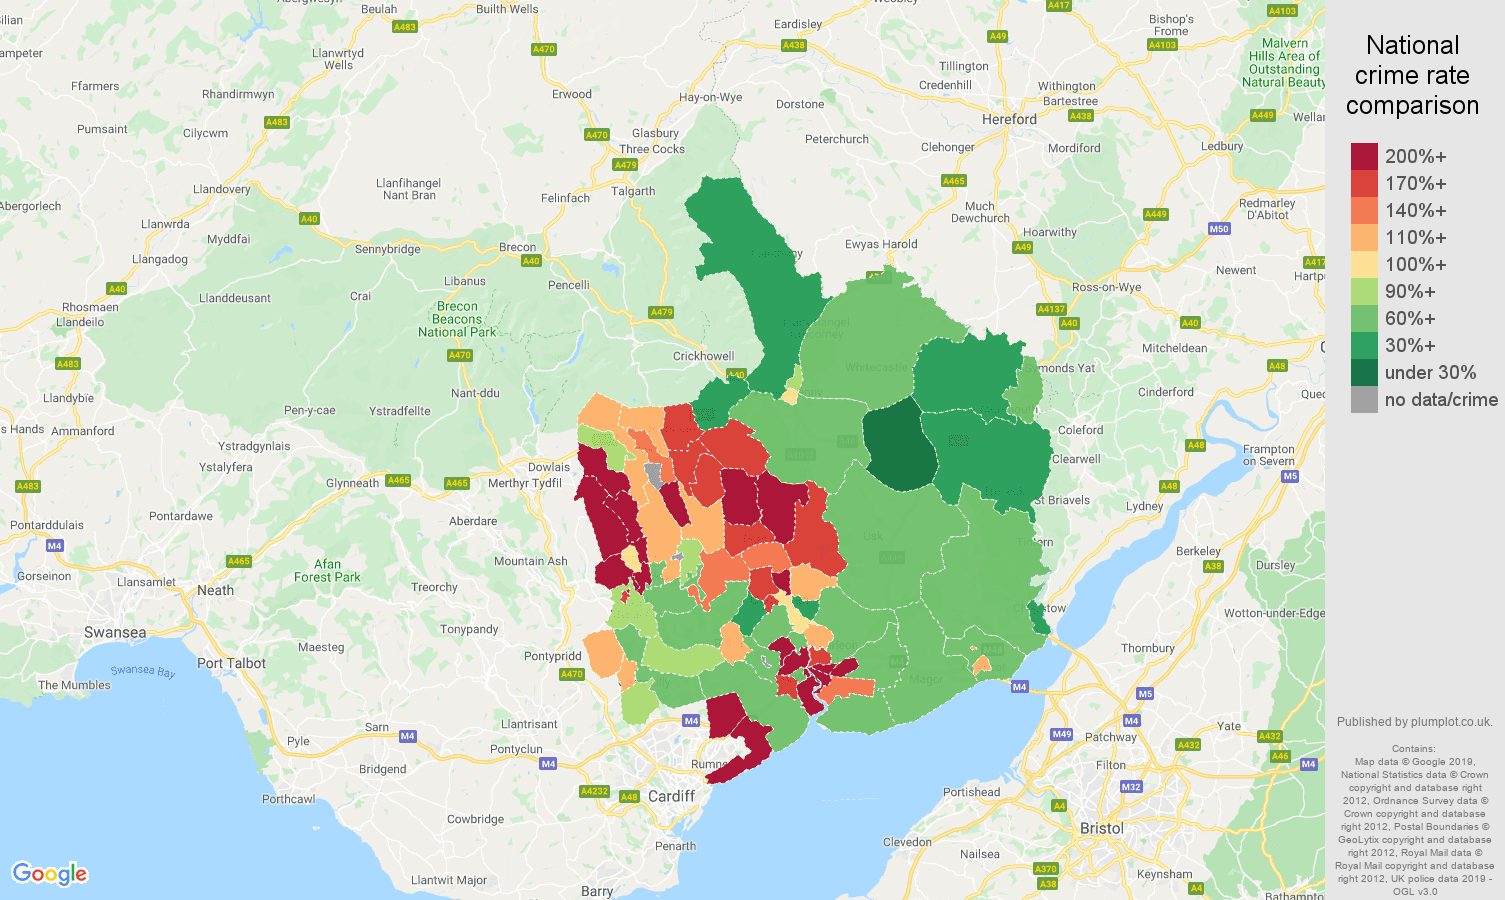 Gwent other crime rate comparison map